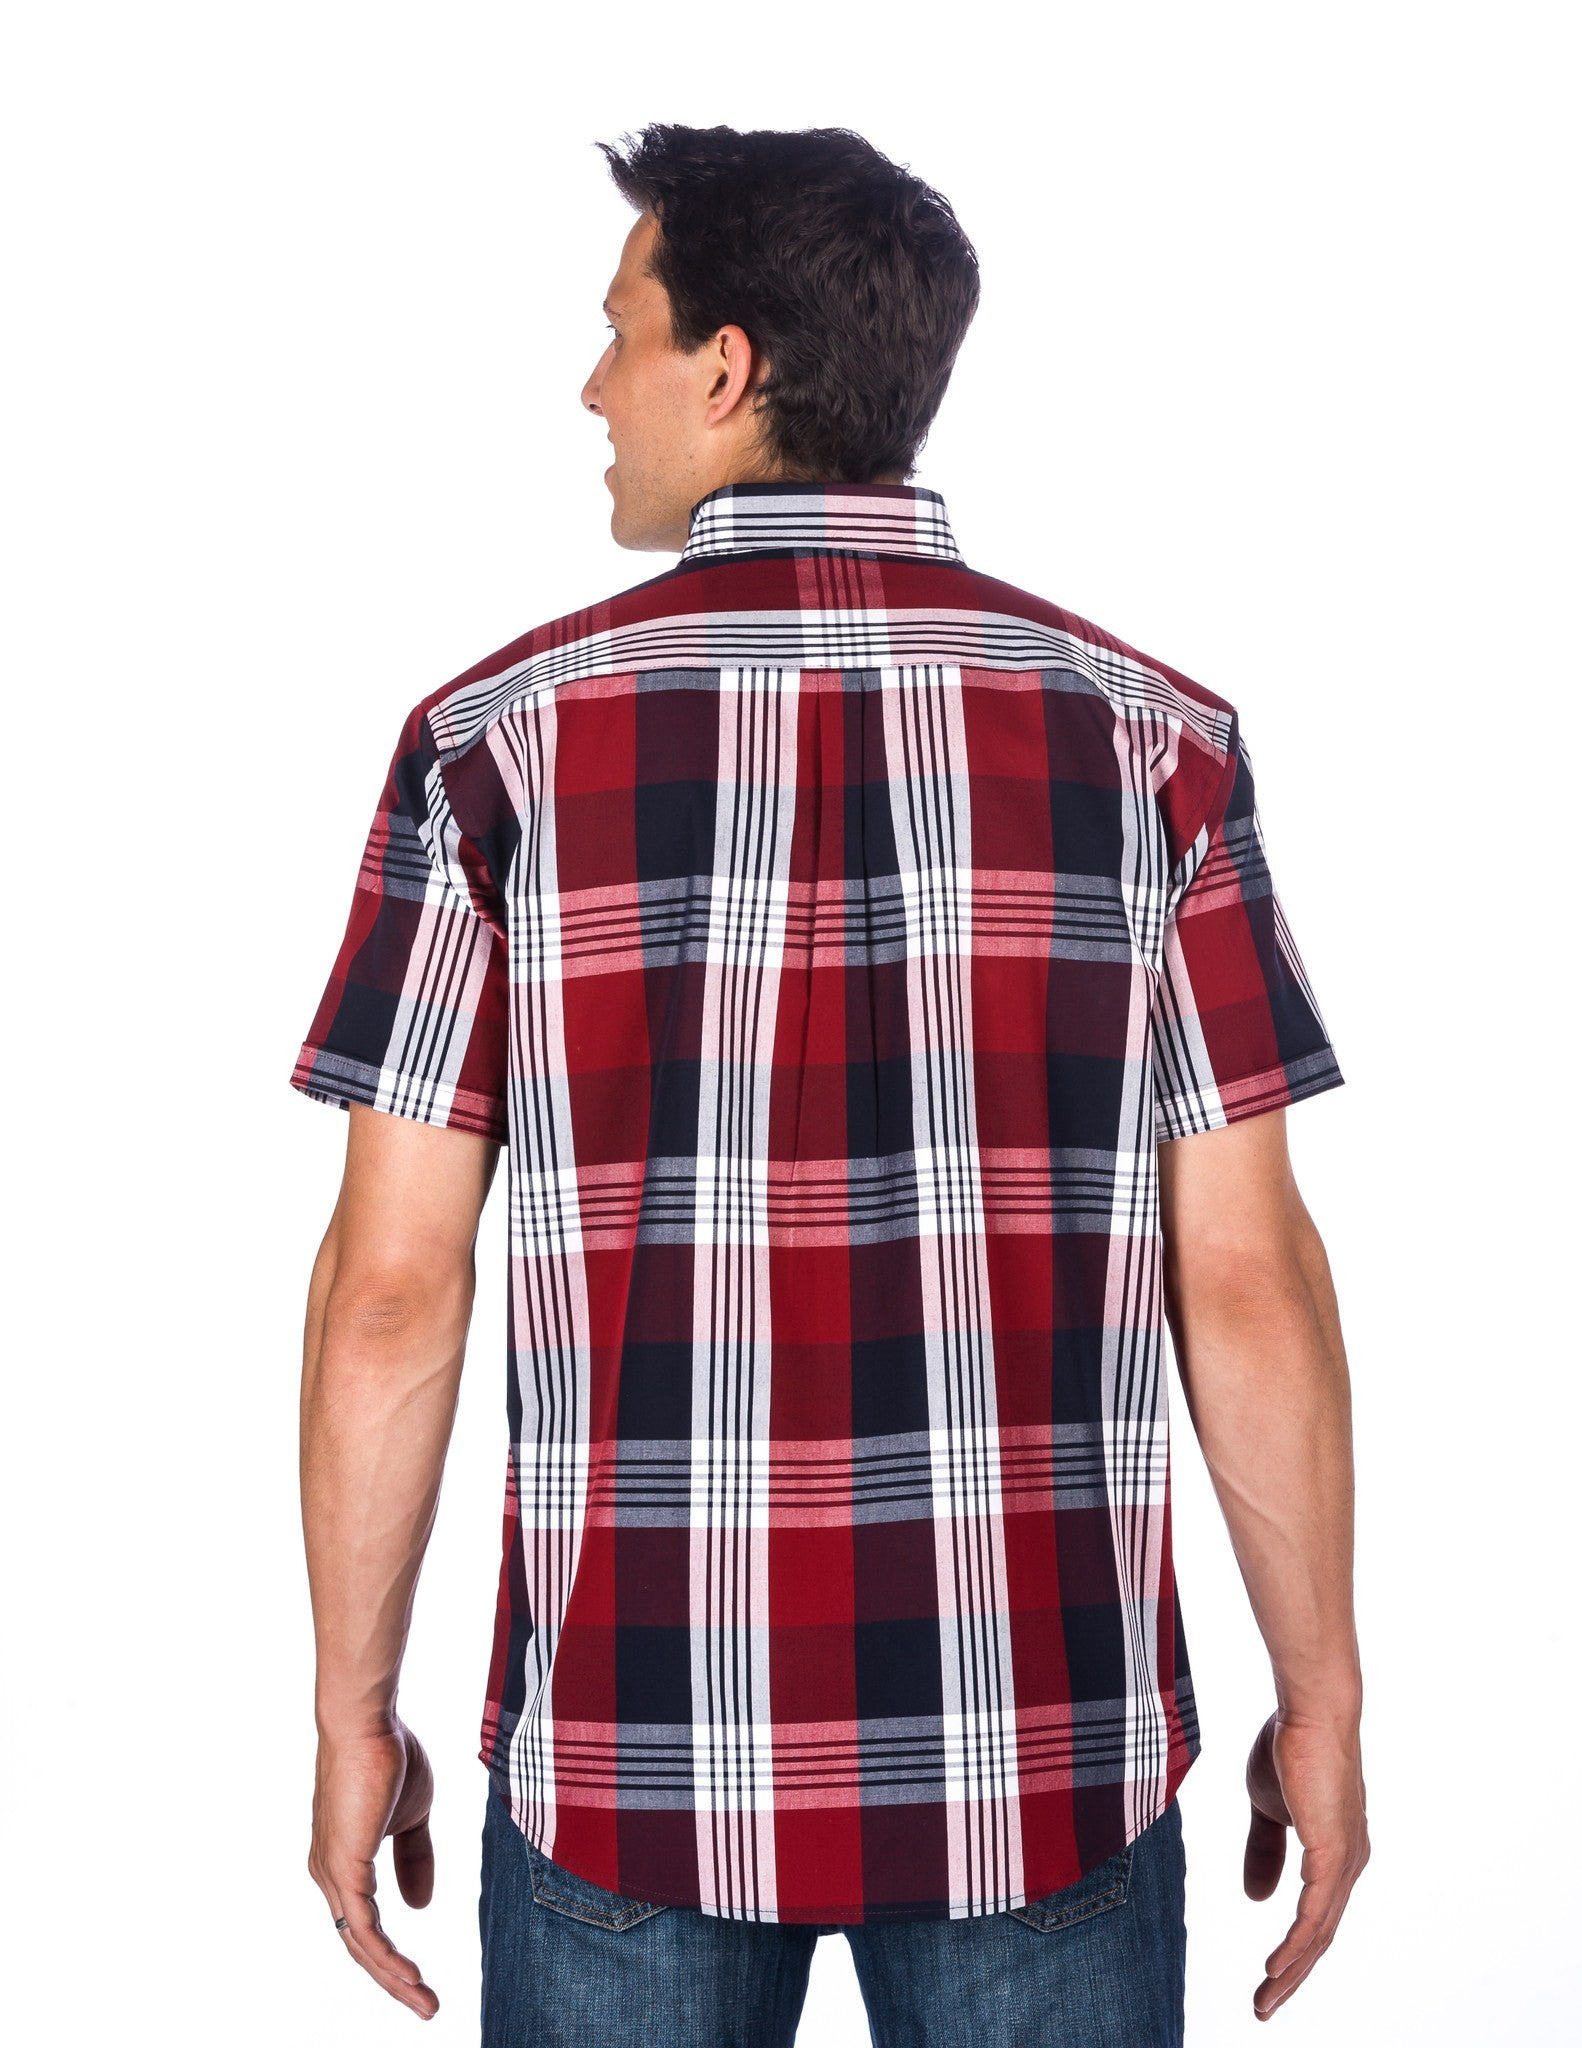 Stripe Plaid Red/Navy